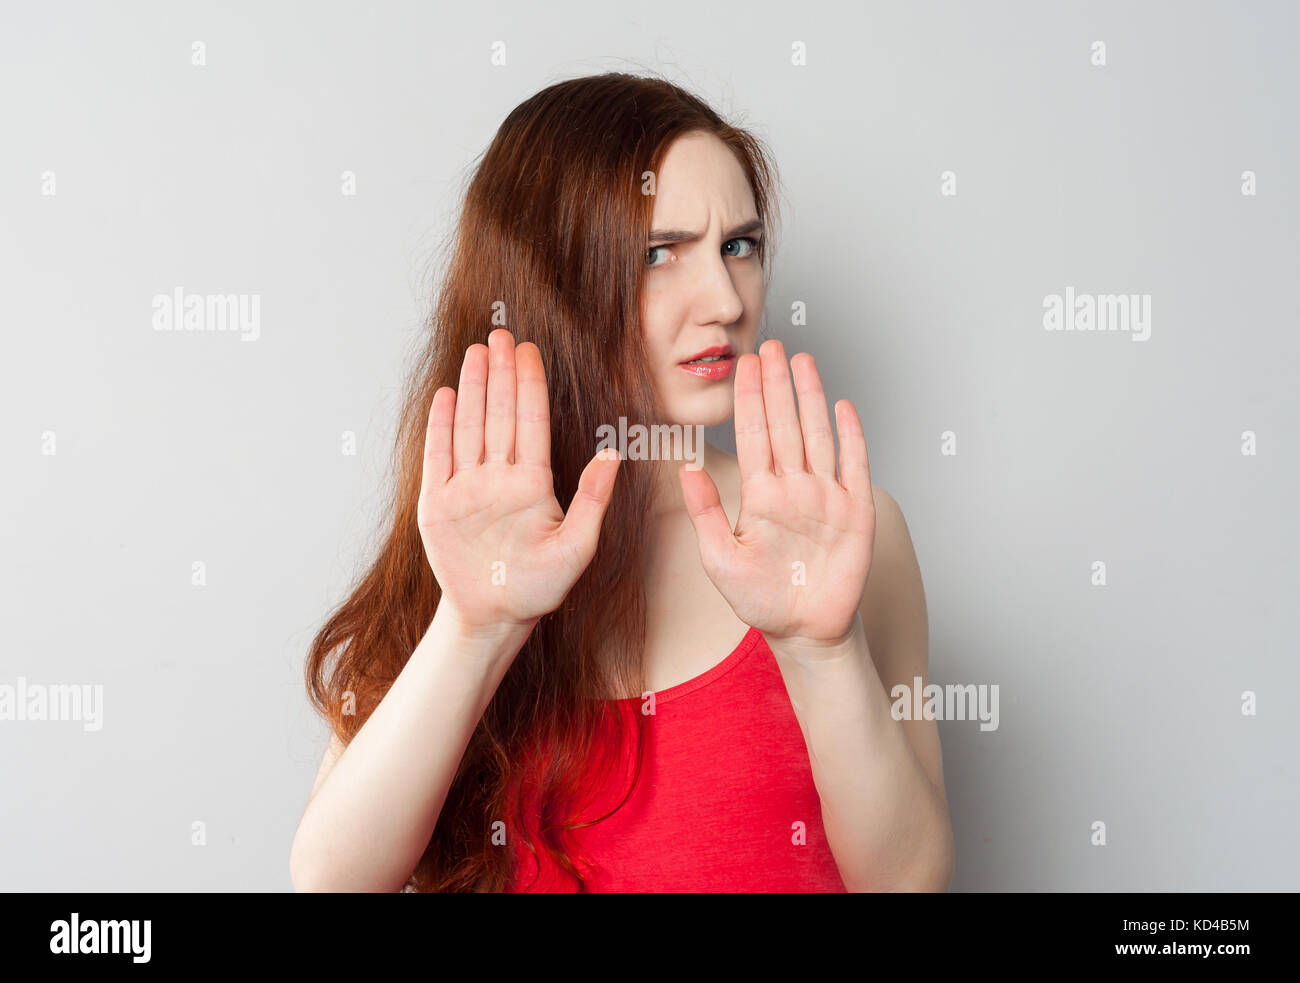 A frightened annoyed young woman holds her hands in front of her making stop sign, defending herself from someone - Stock Image